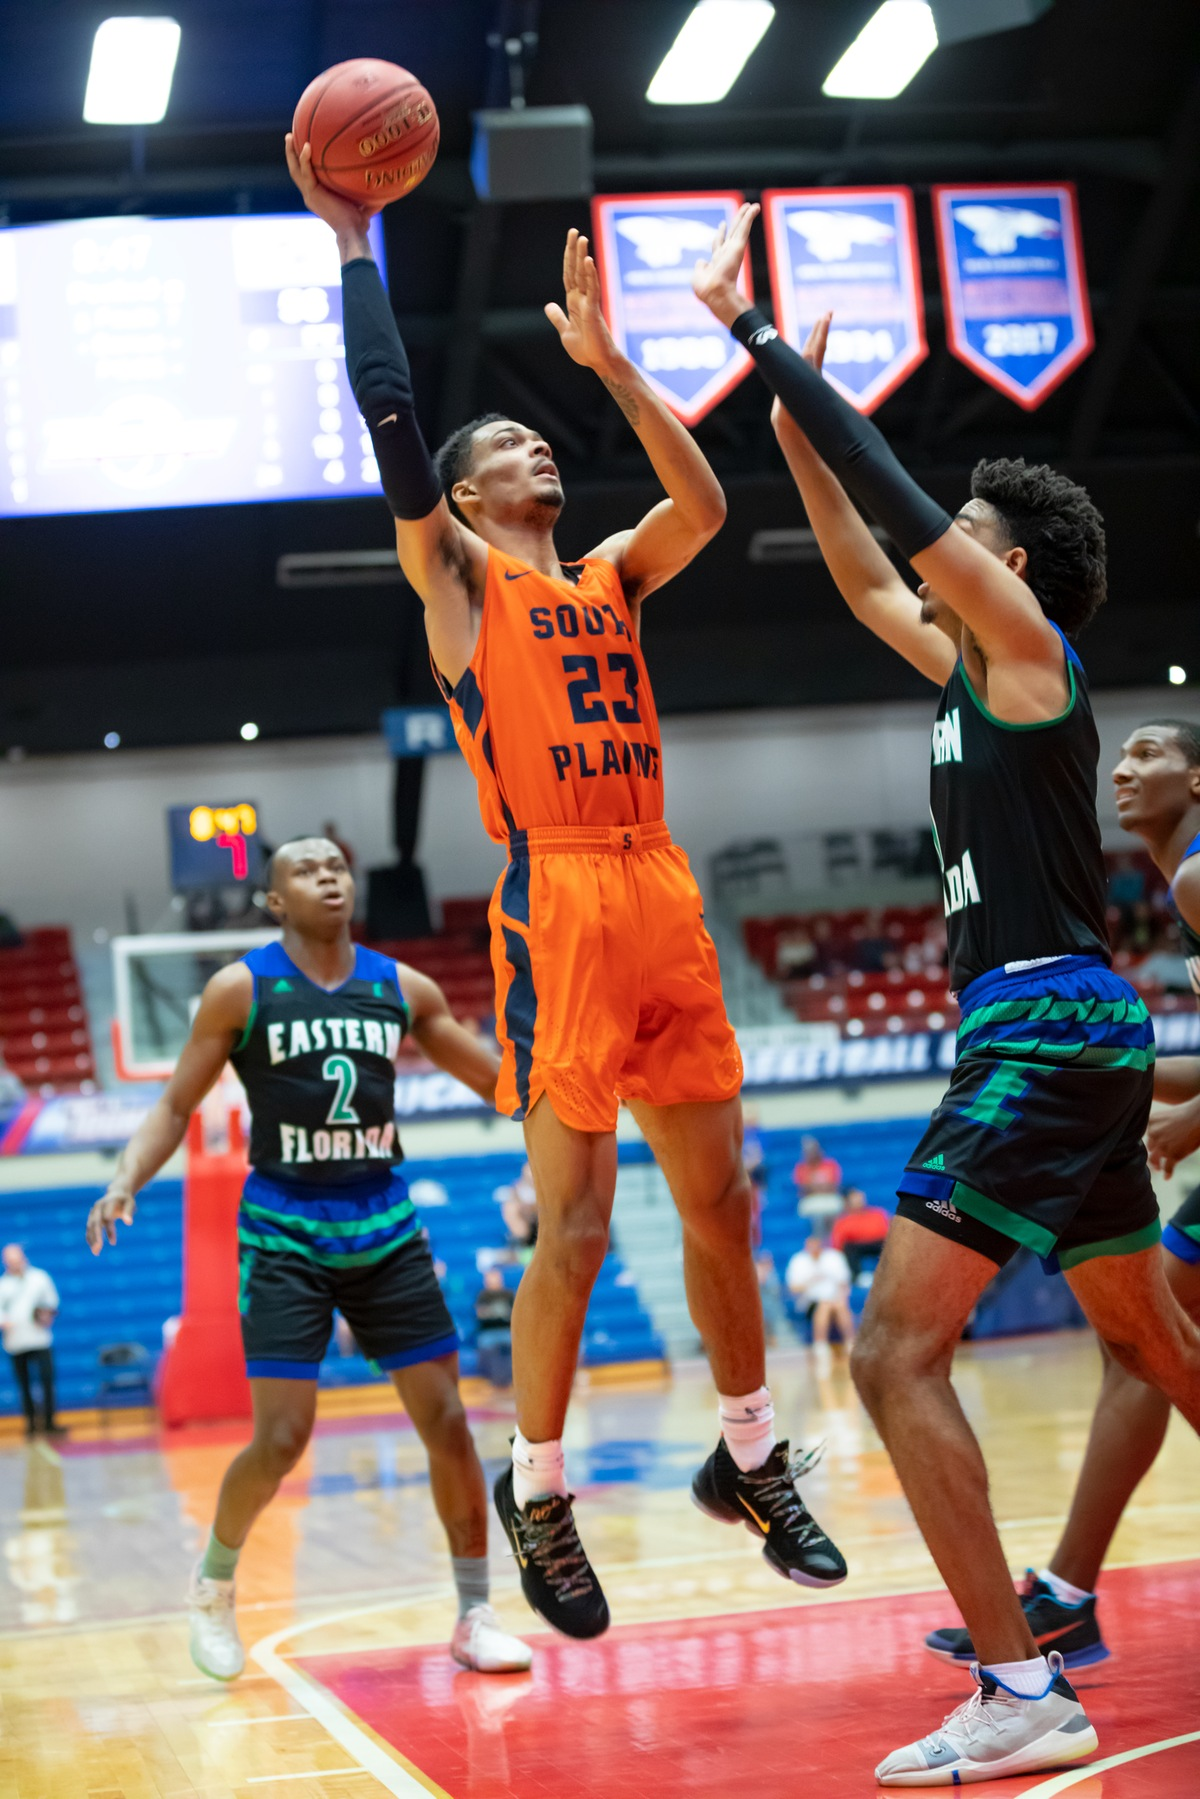 No. 2 Texans edge No. 10 Eastern Florida State 82-74, advance to NJCAA Final Four